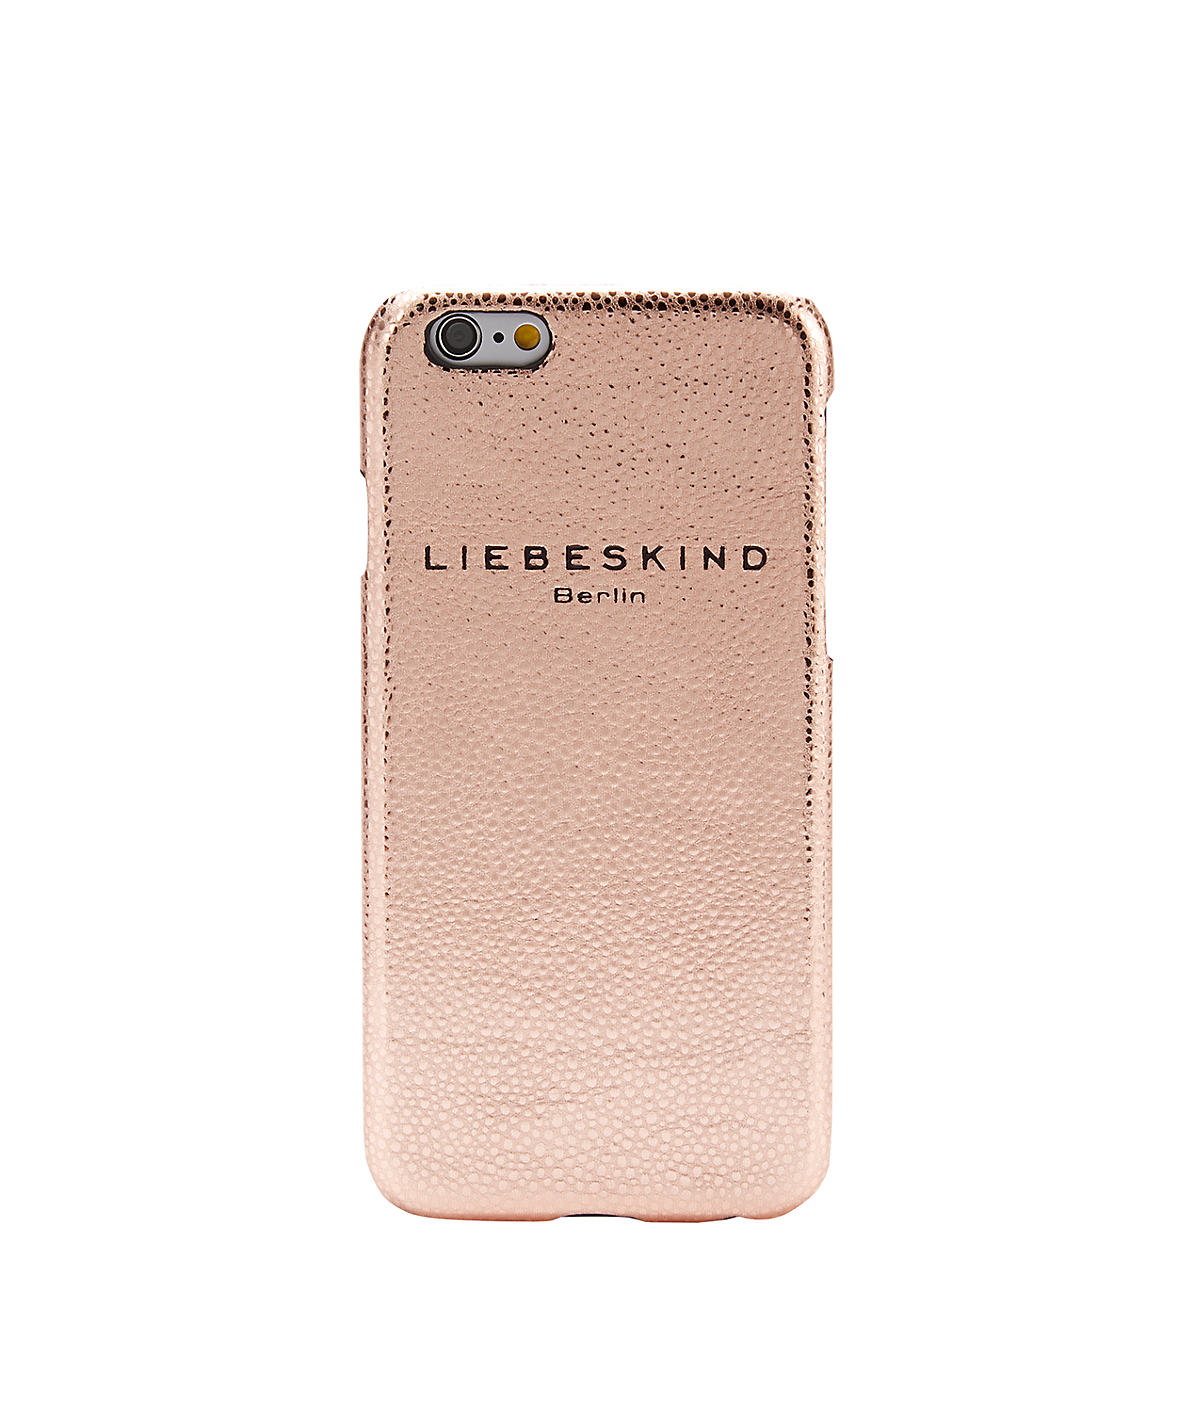 Accessories from liebeskind